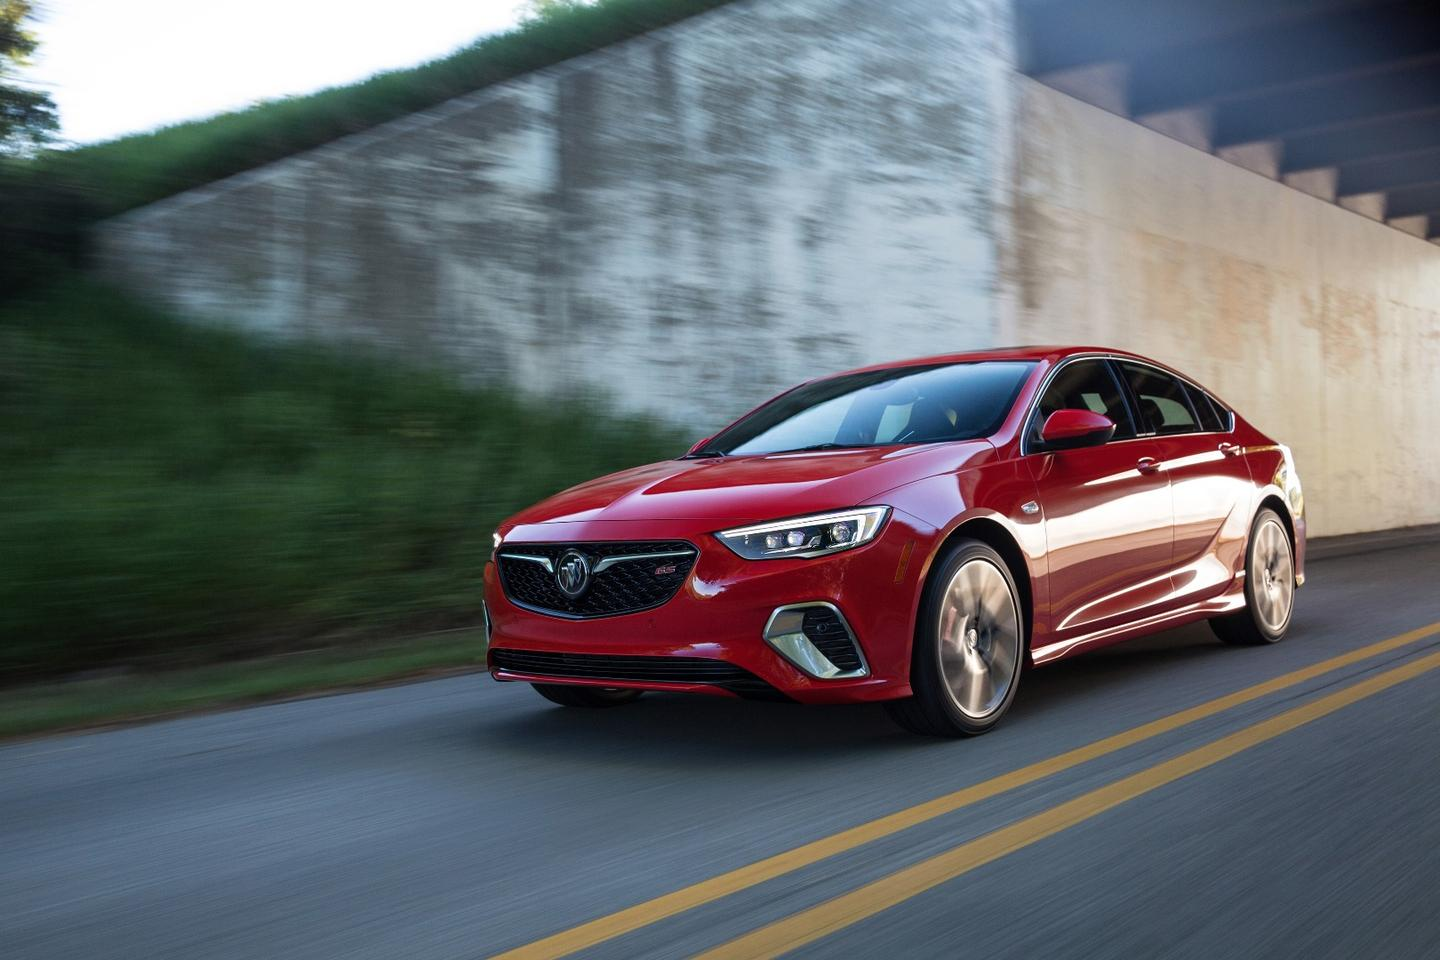 The Buick Regal GS has a clever GKN rear differential